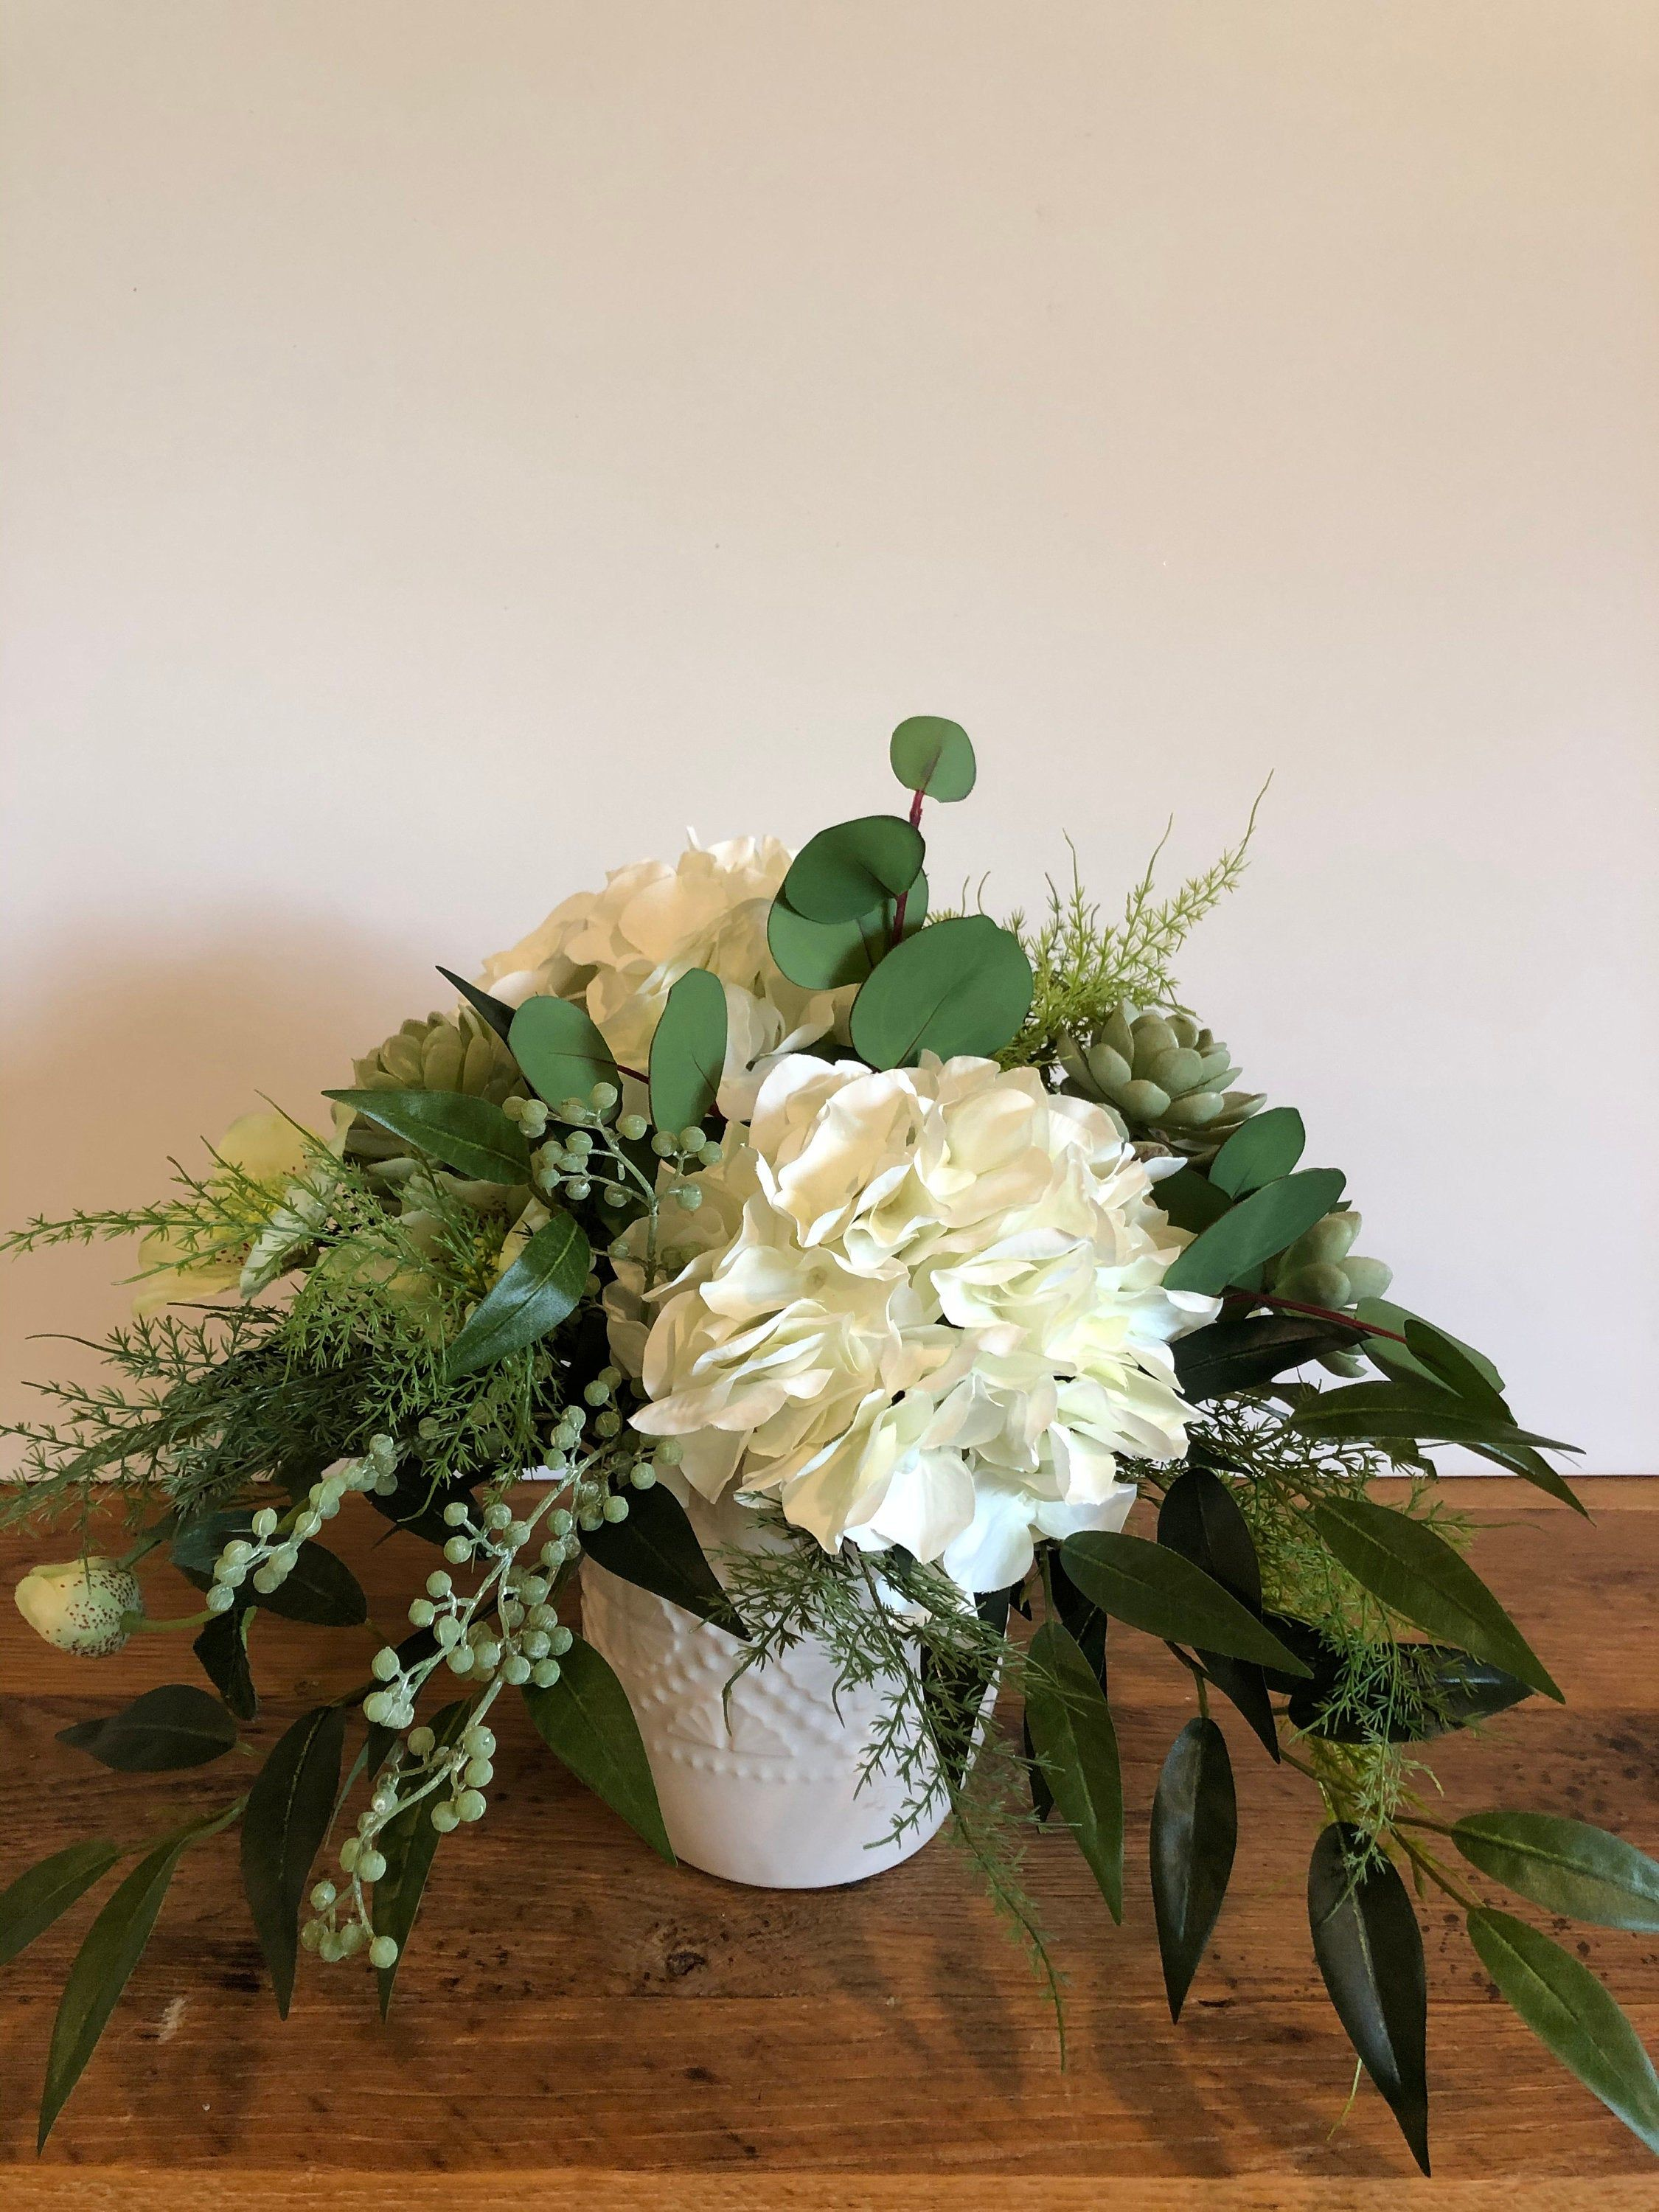 Dining Table Floral Arrangement White Hydrangea Floral Etsy Table Floral Arrangements White Hydrangea Floral Arrangements